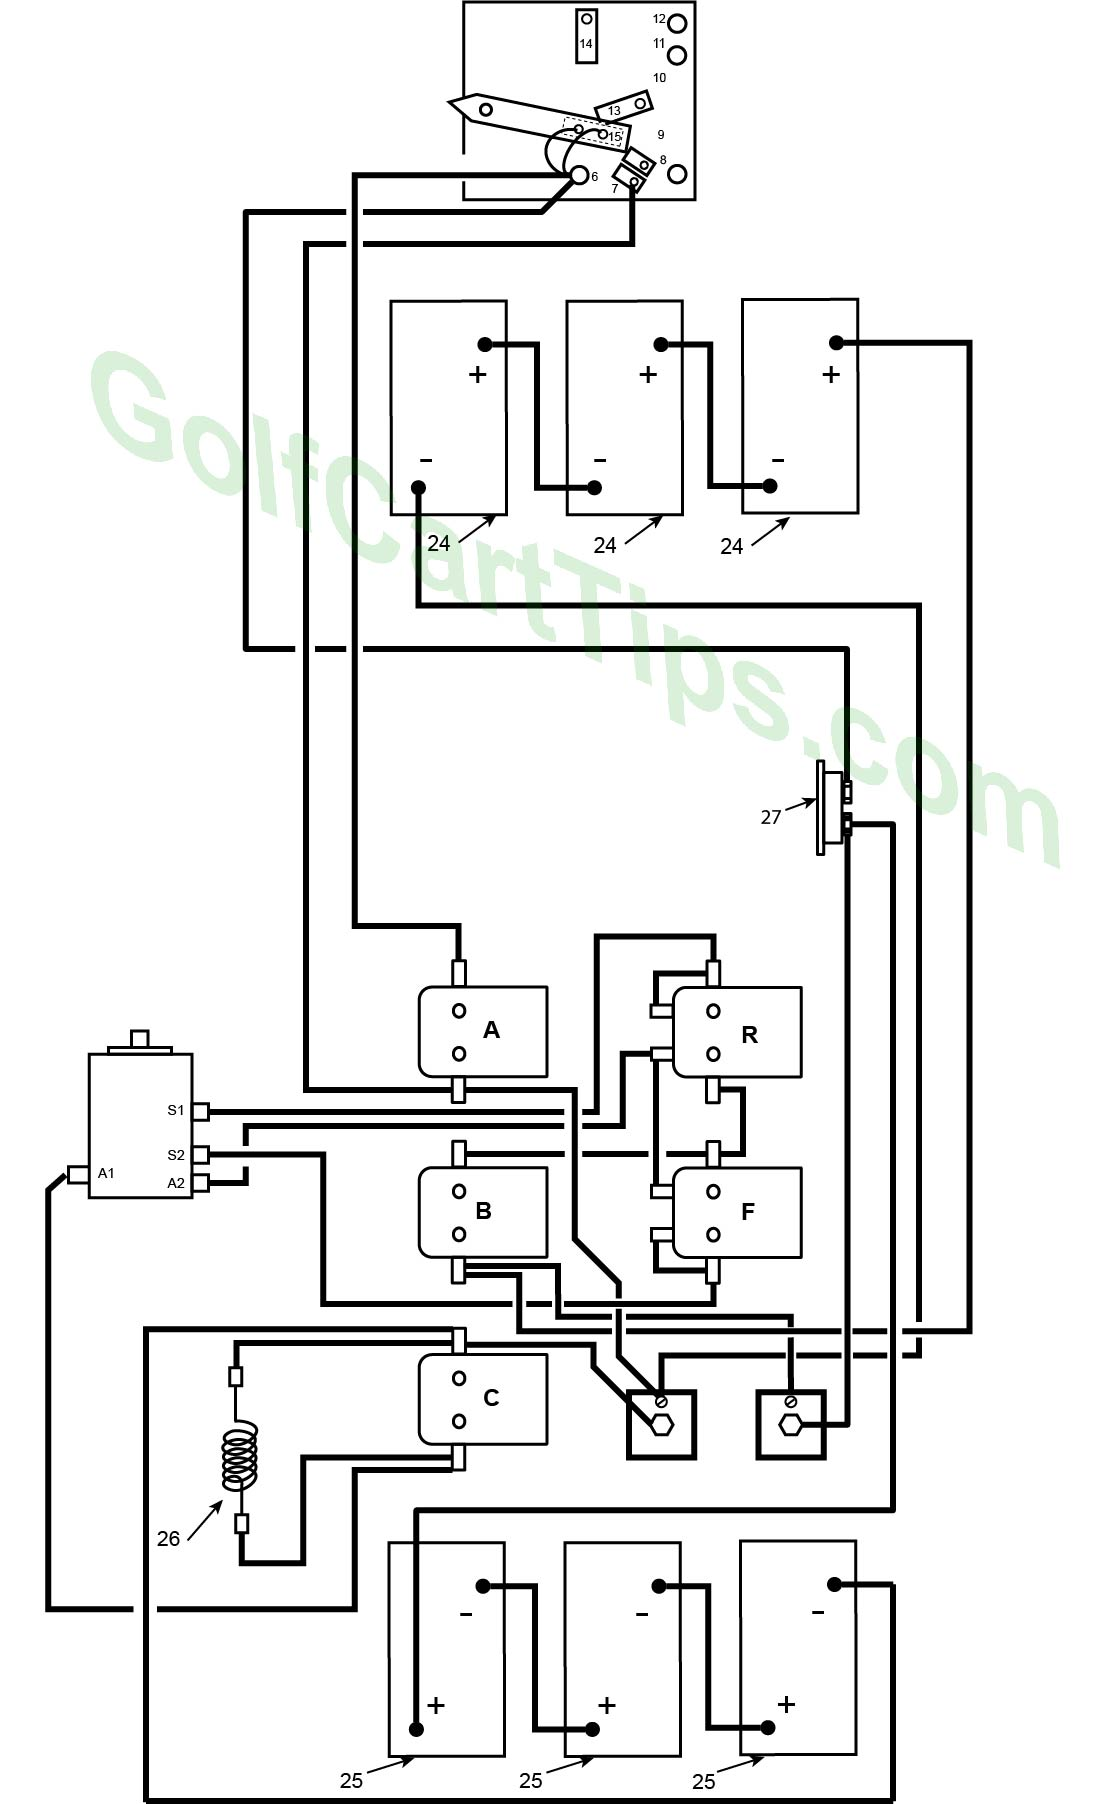 hight resolution of 1967 70 model de heavy cable diagram harley davidson golf cart